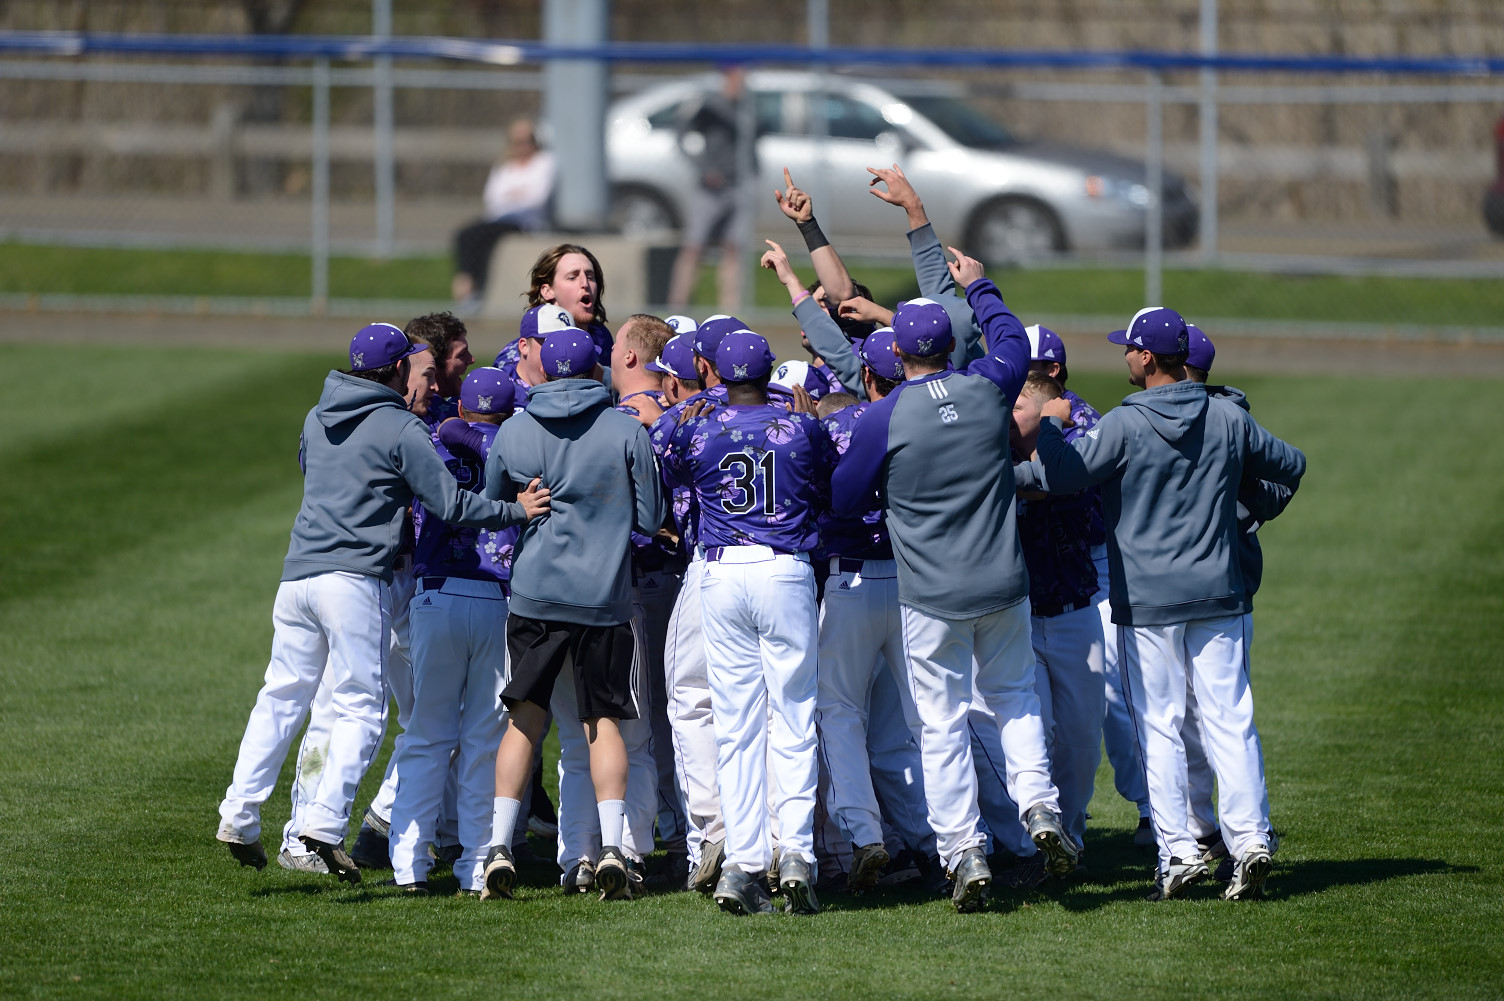 Never Say Die Purple Knights Move On To ECC Baseball Championship Round With 14-12 Win Over Molloy